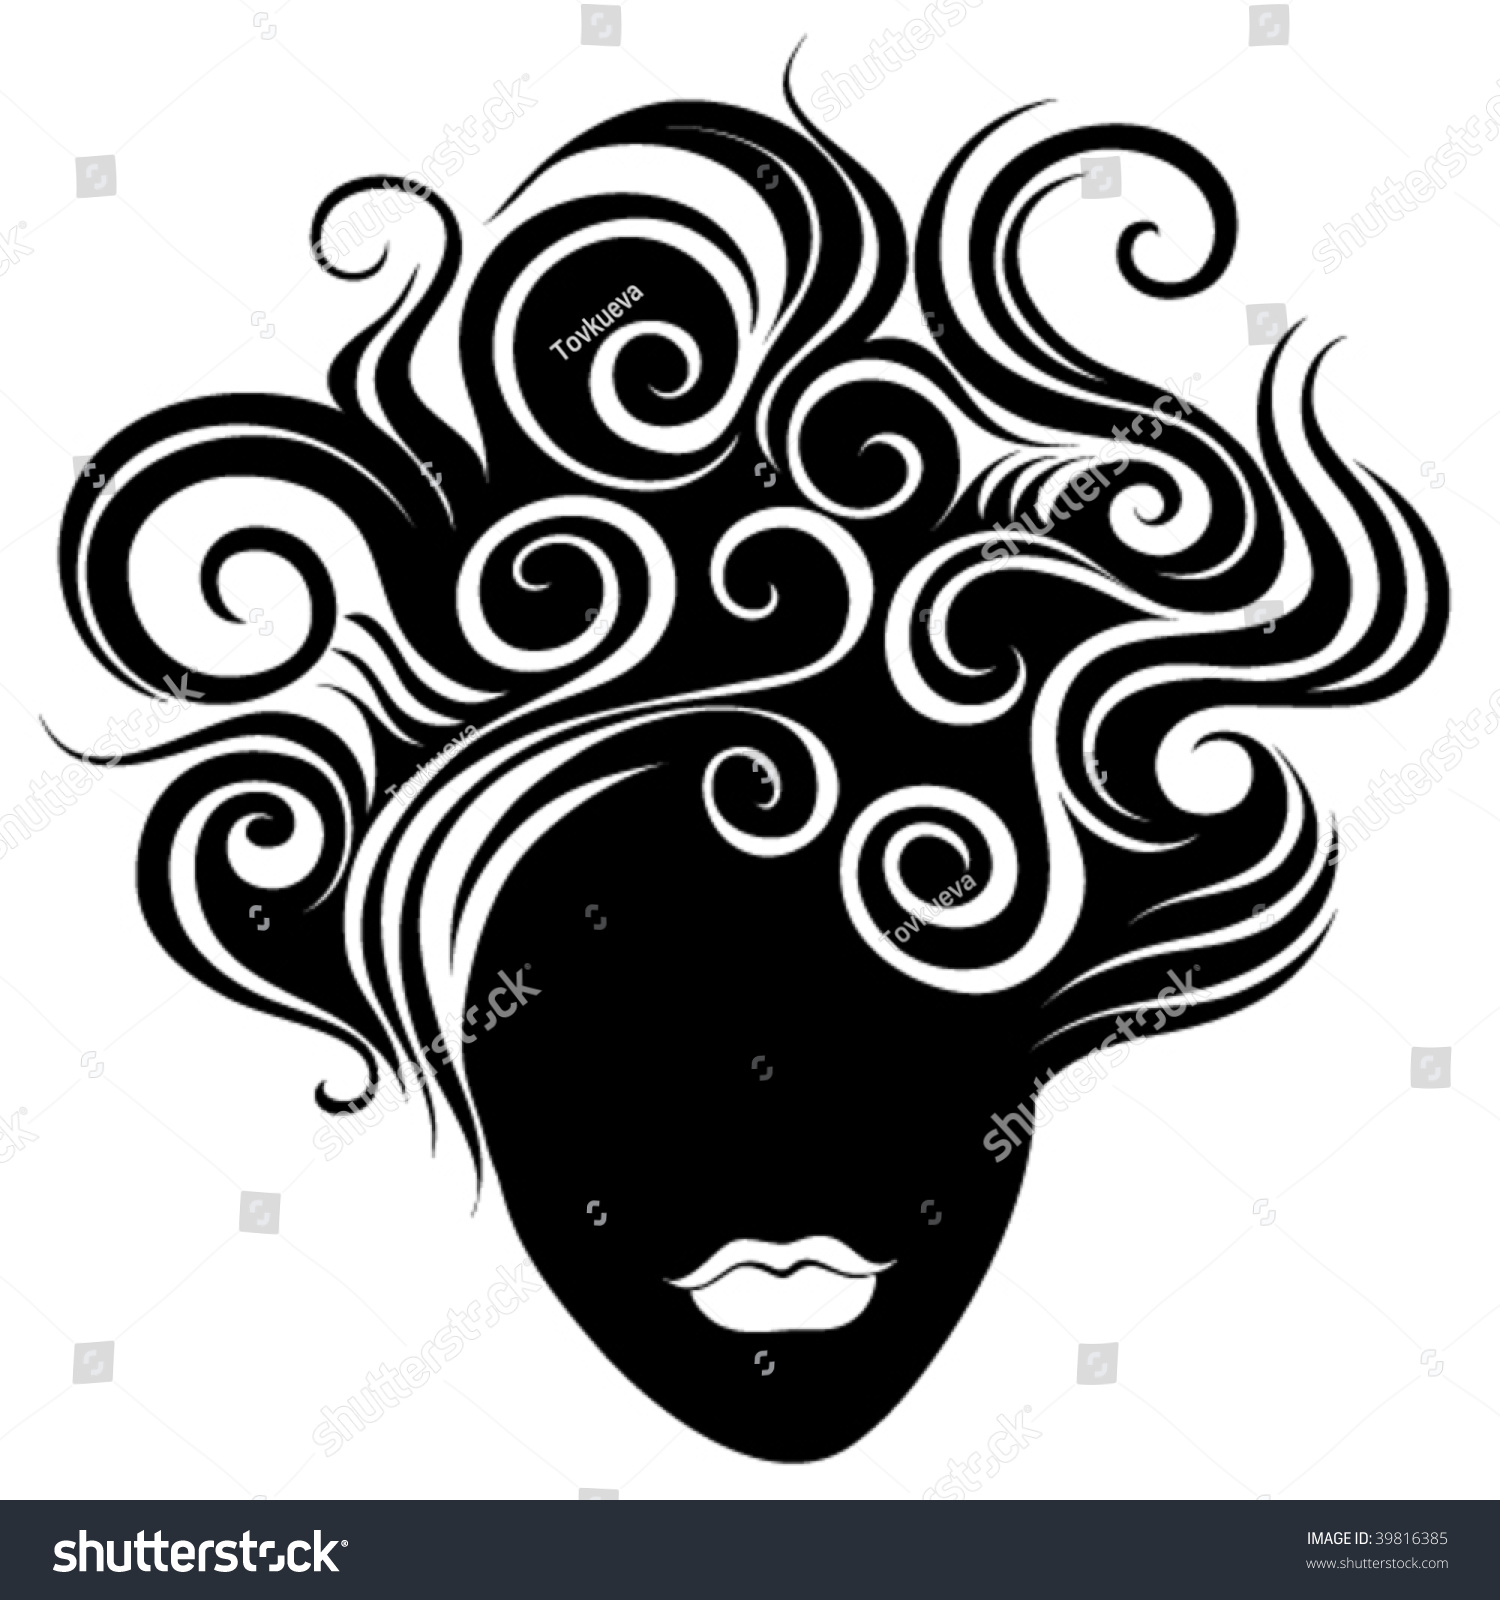 Abstract Woman Face Stock Vector 39816385 - Shutterstock